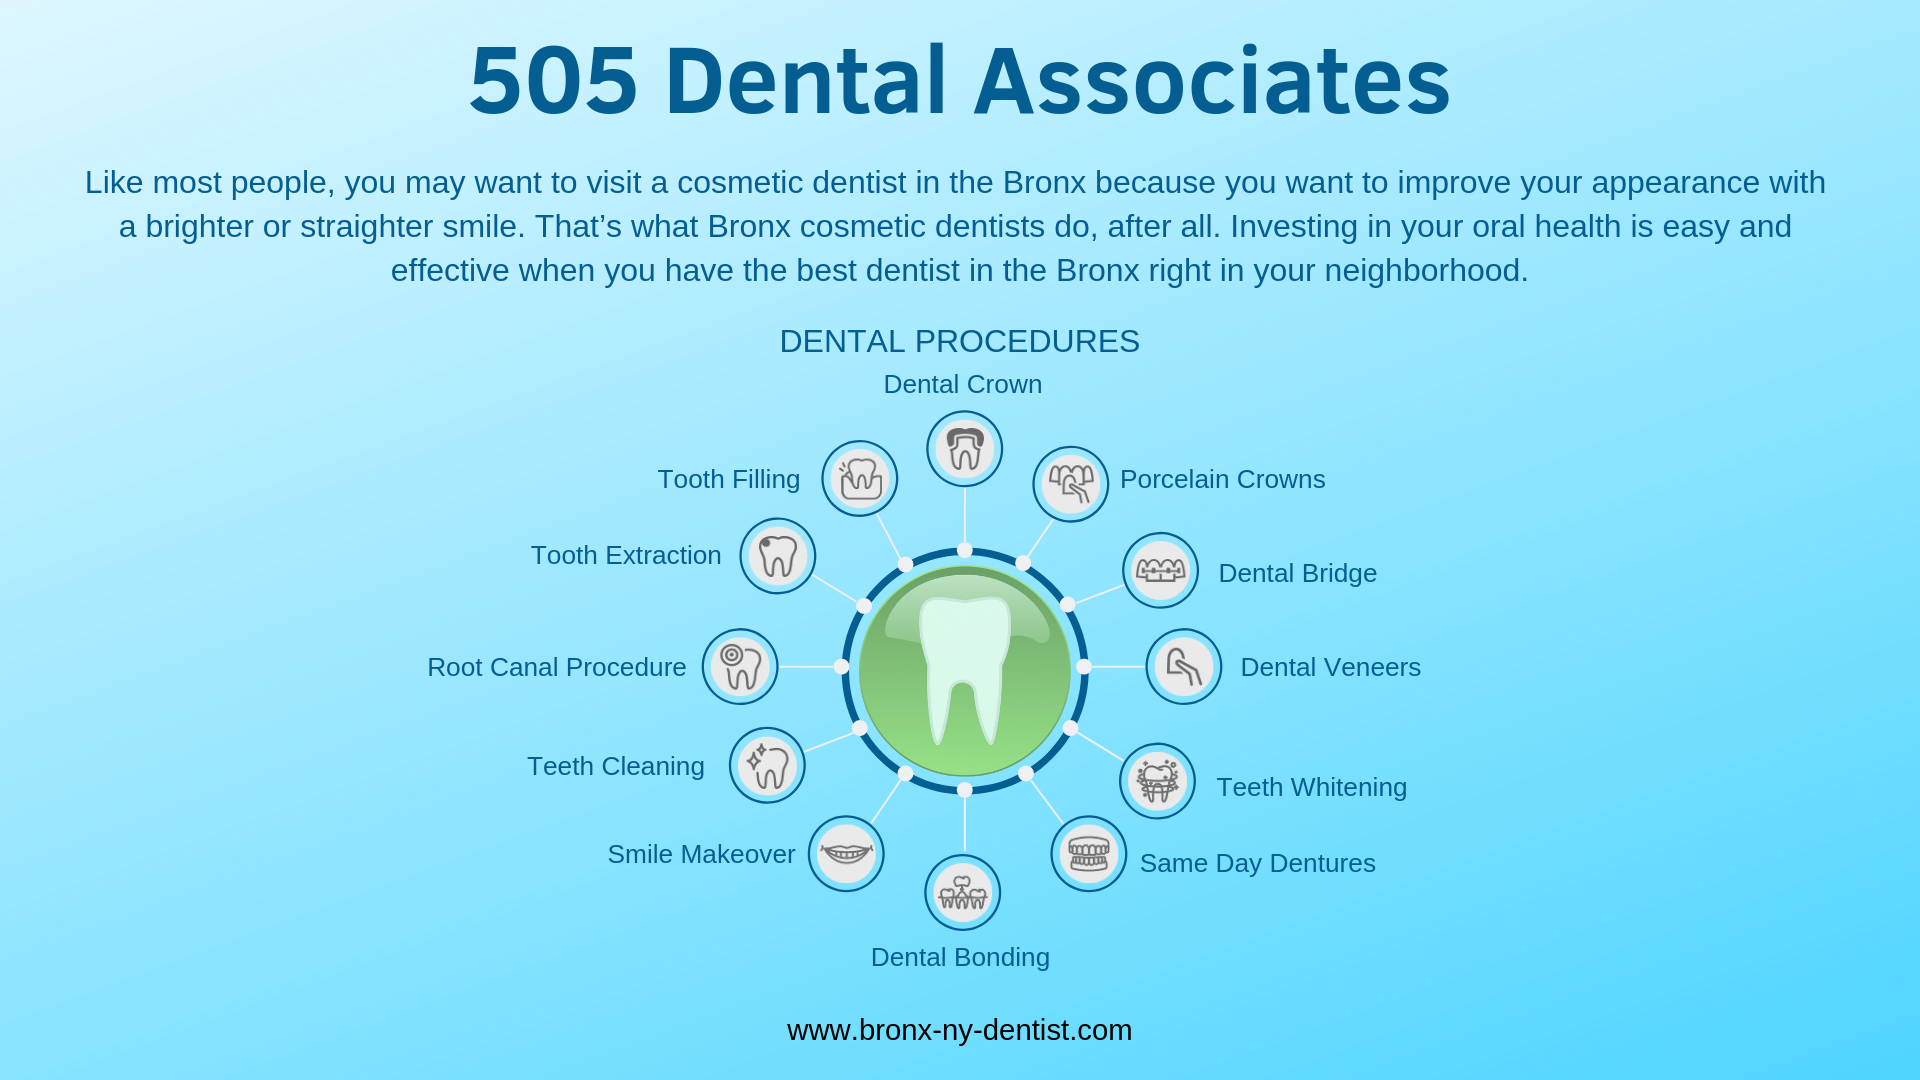 505 Dental Associates services by dentists